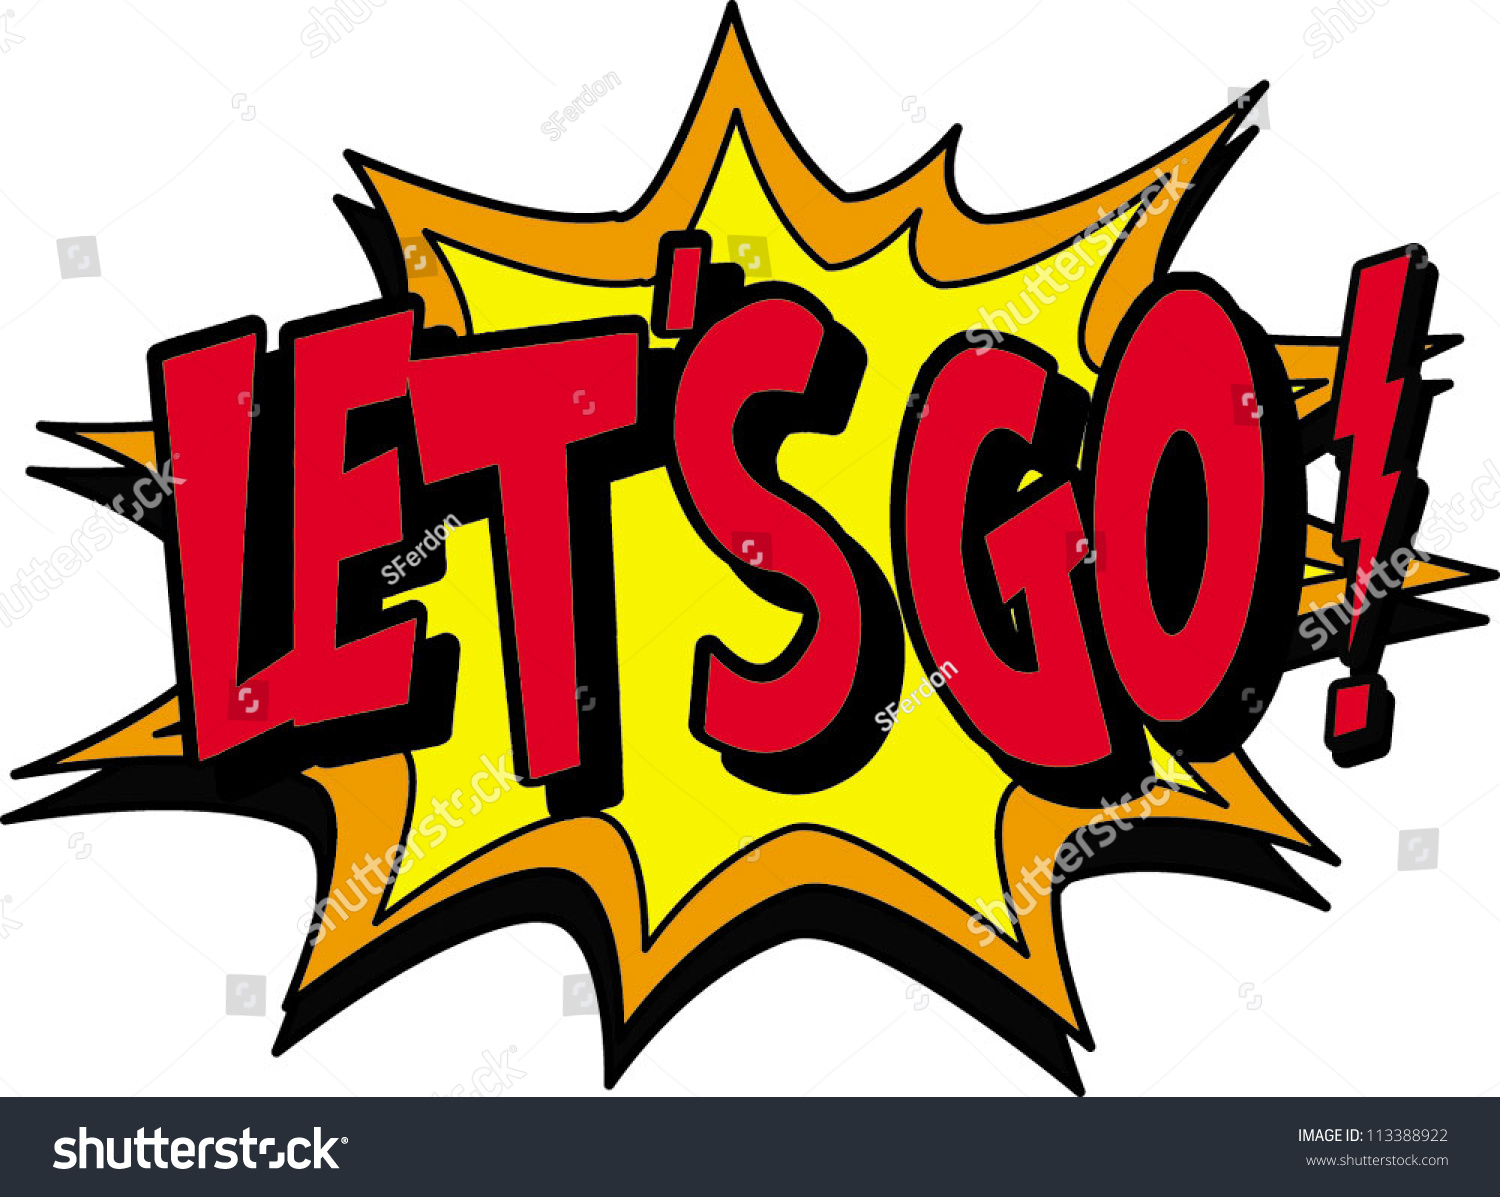 stock-vector-lets-go-113388922.jpg